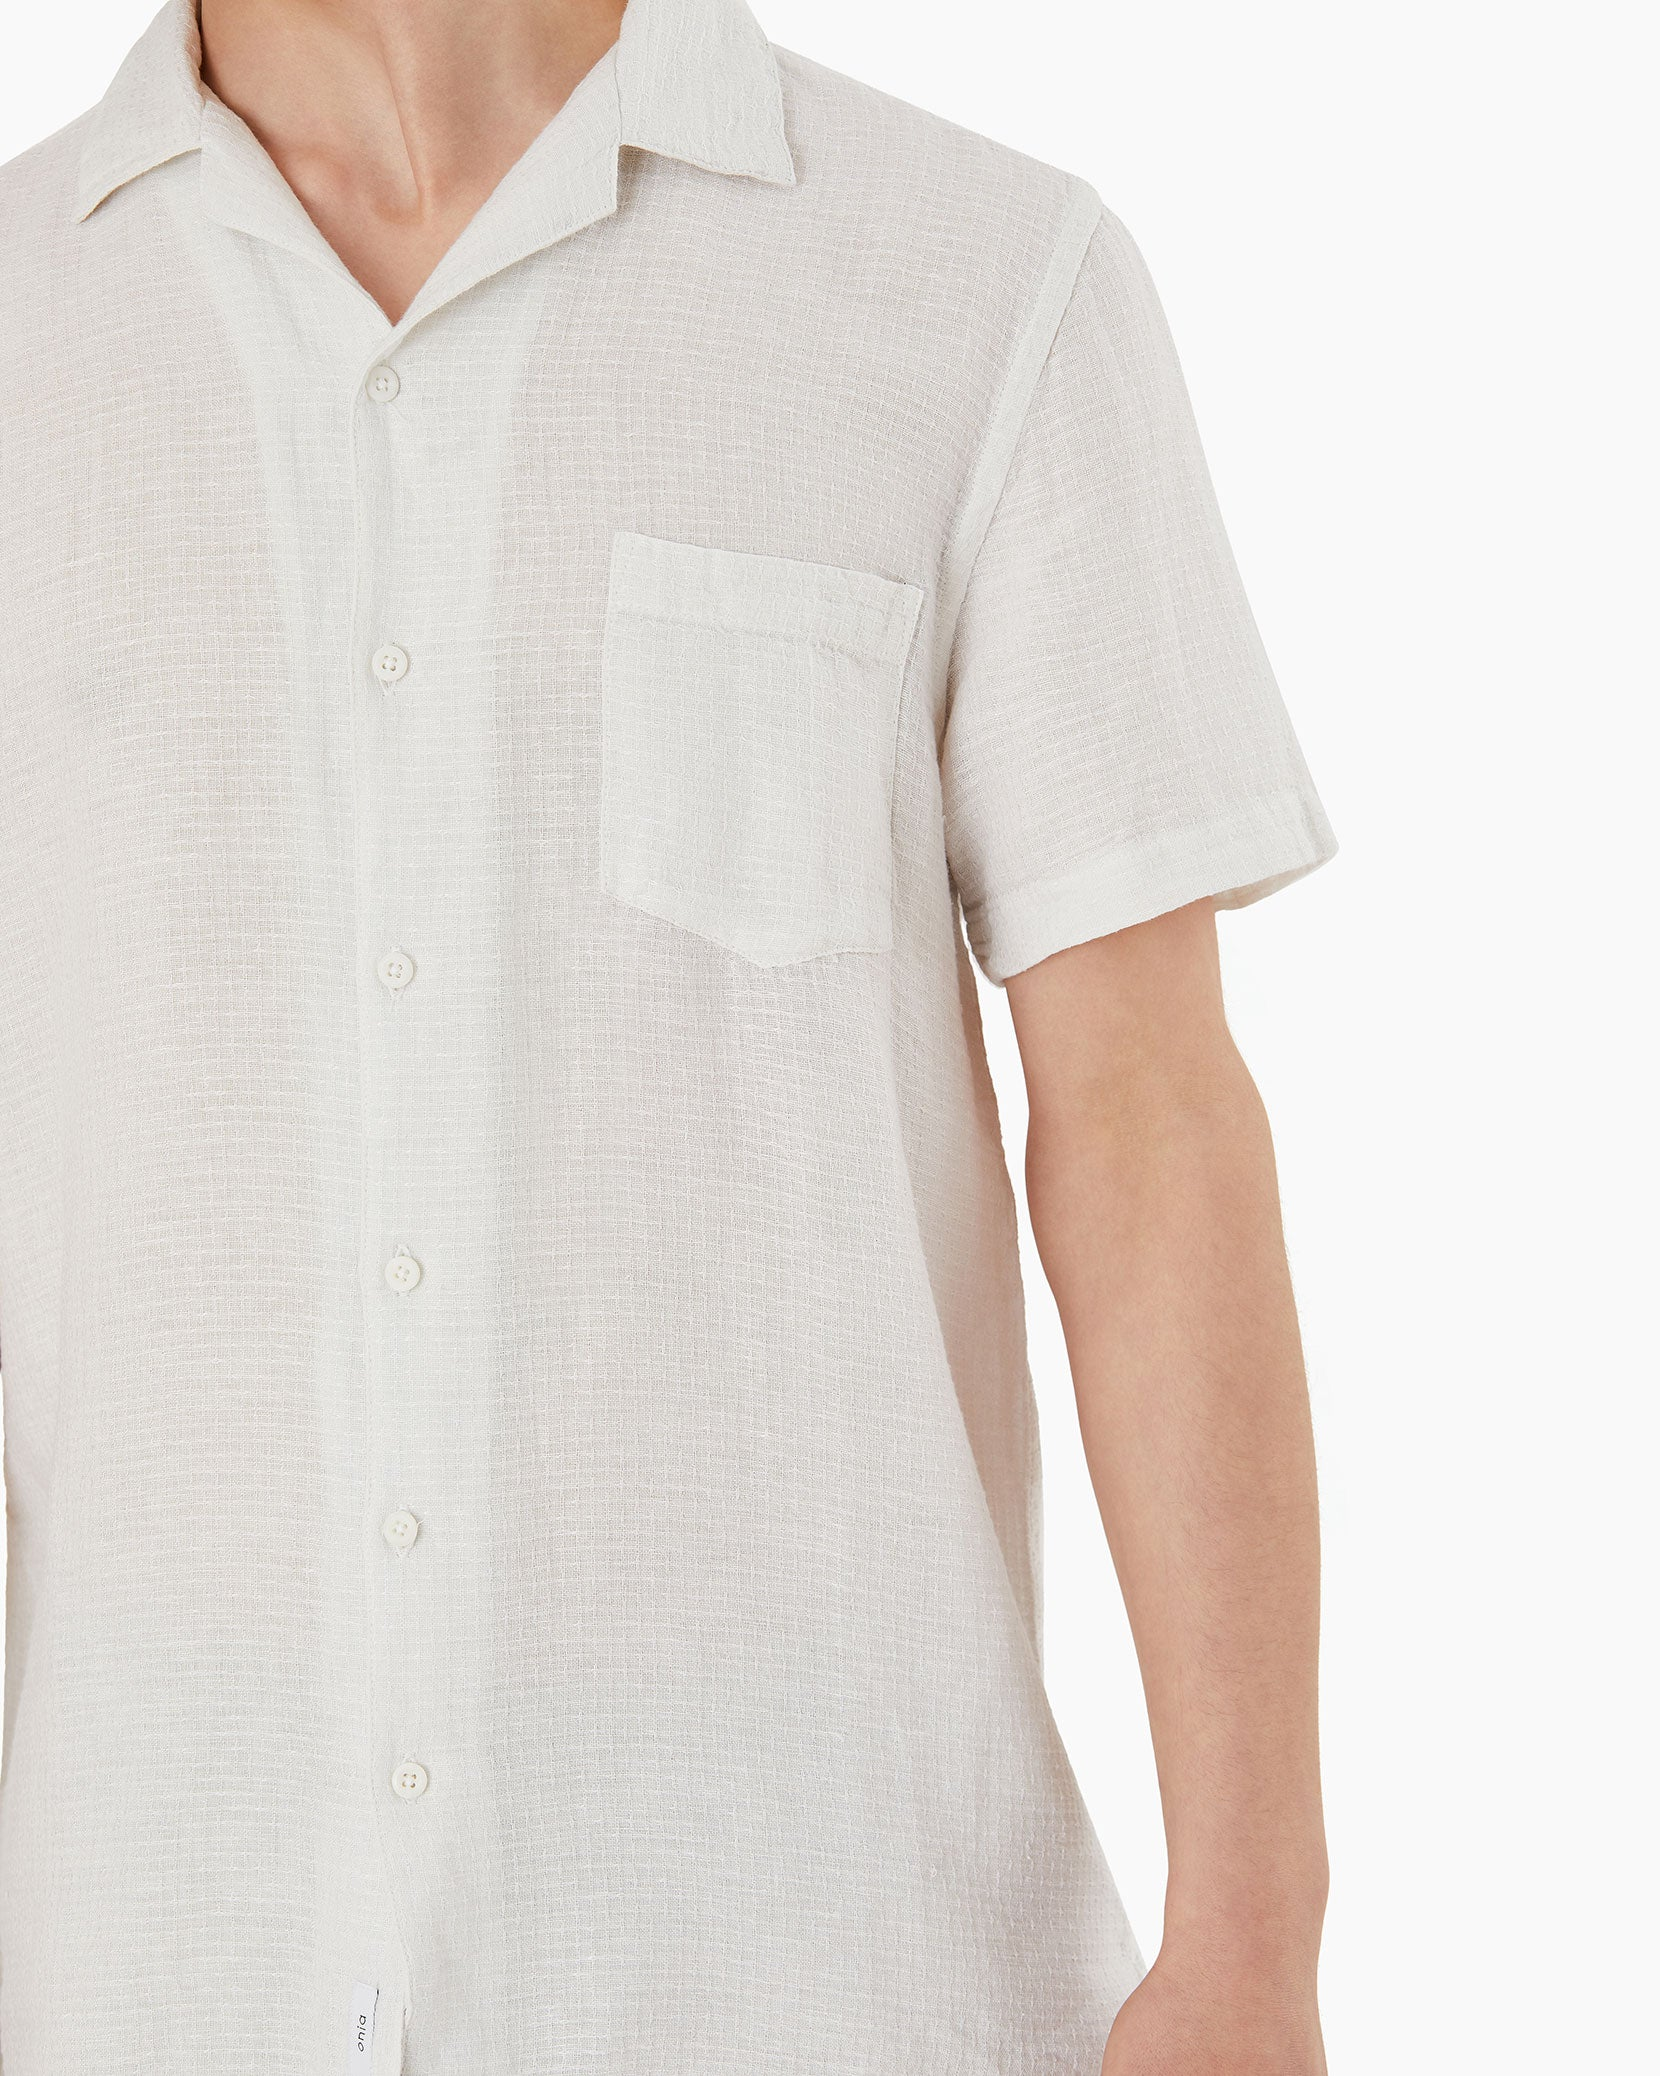 Vacation Checked Dobby Shirt in White - 2 - Onia